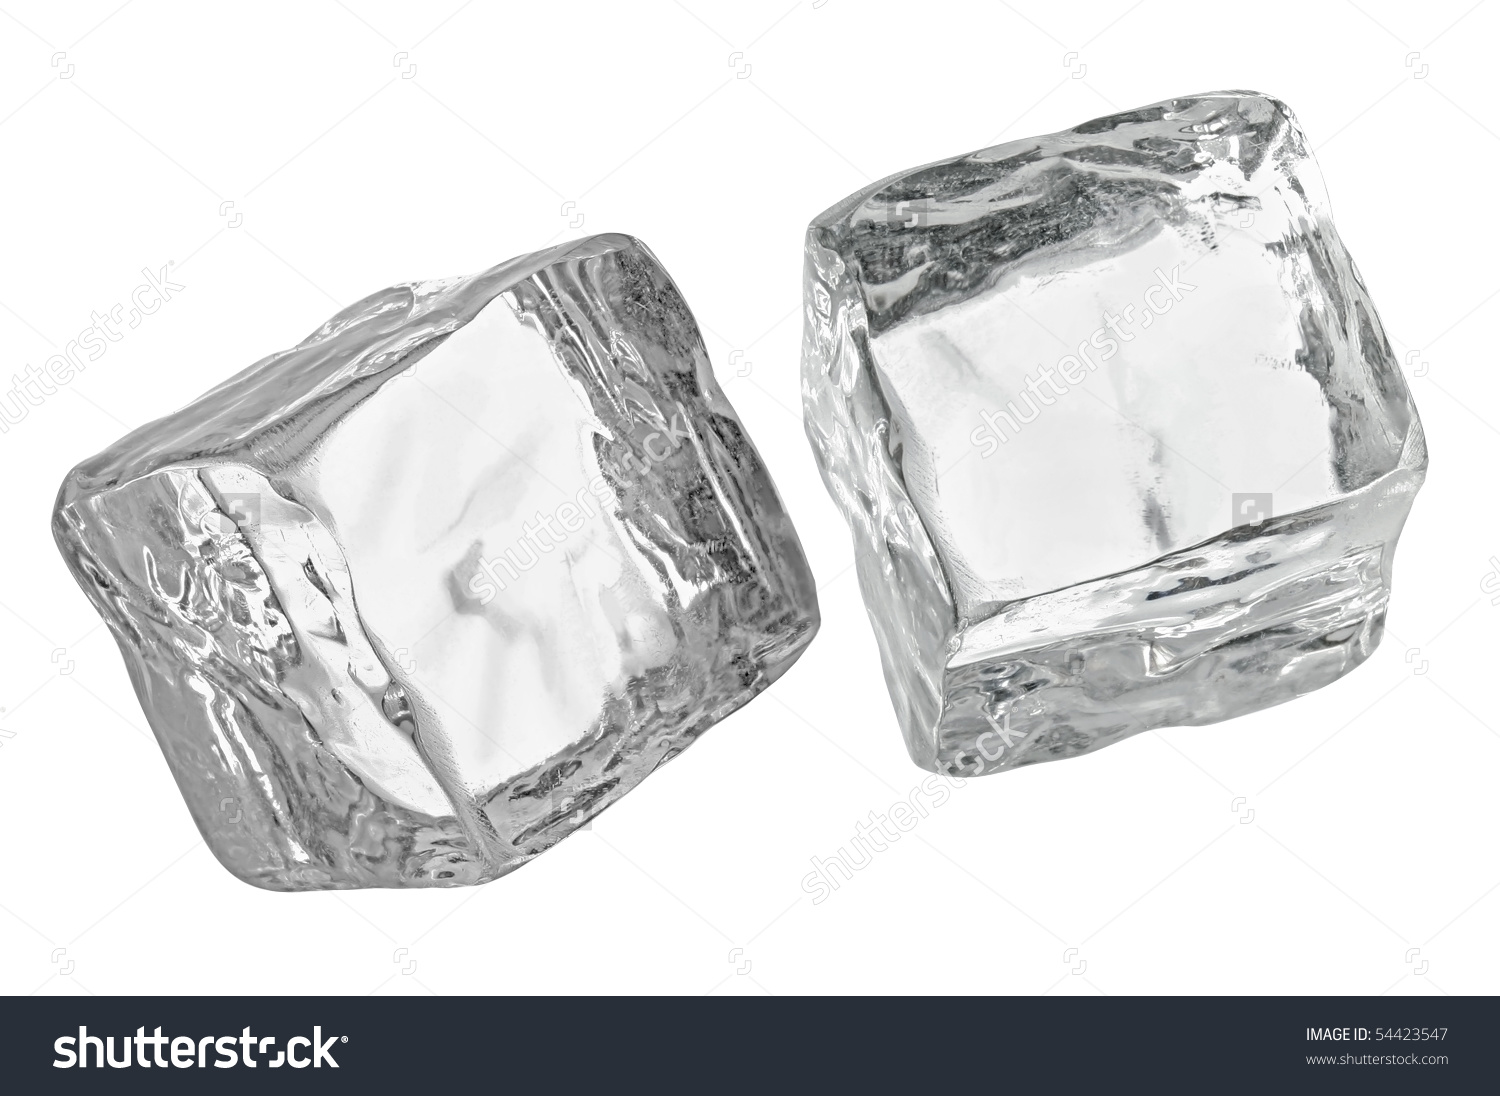 Ice Cubes Pics, Abstract Collection